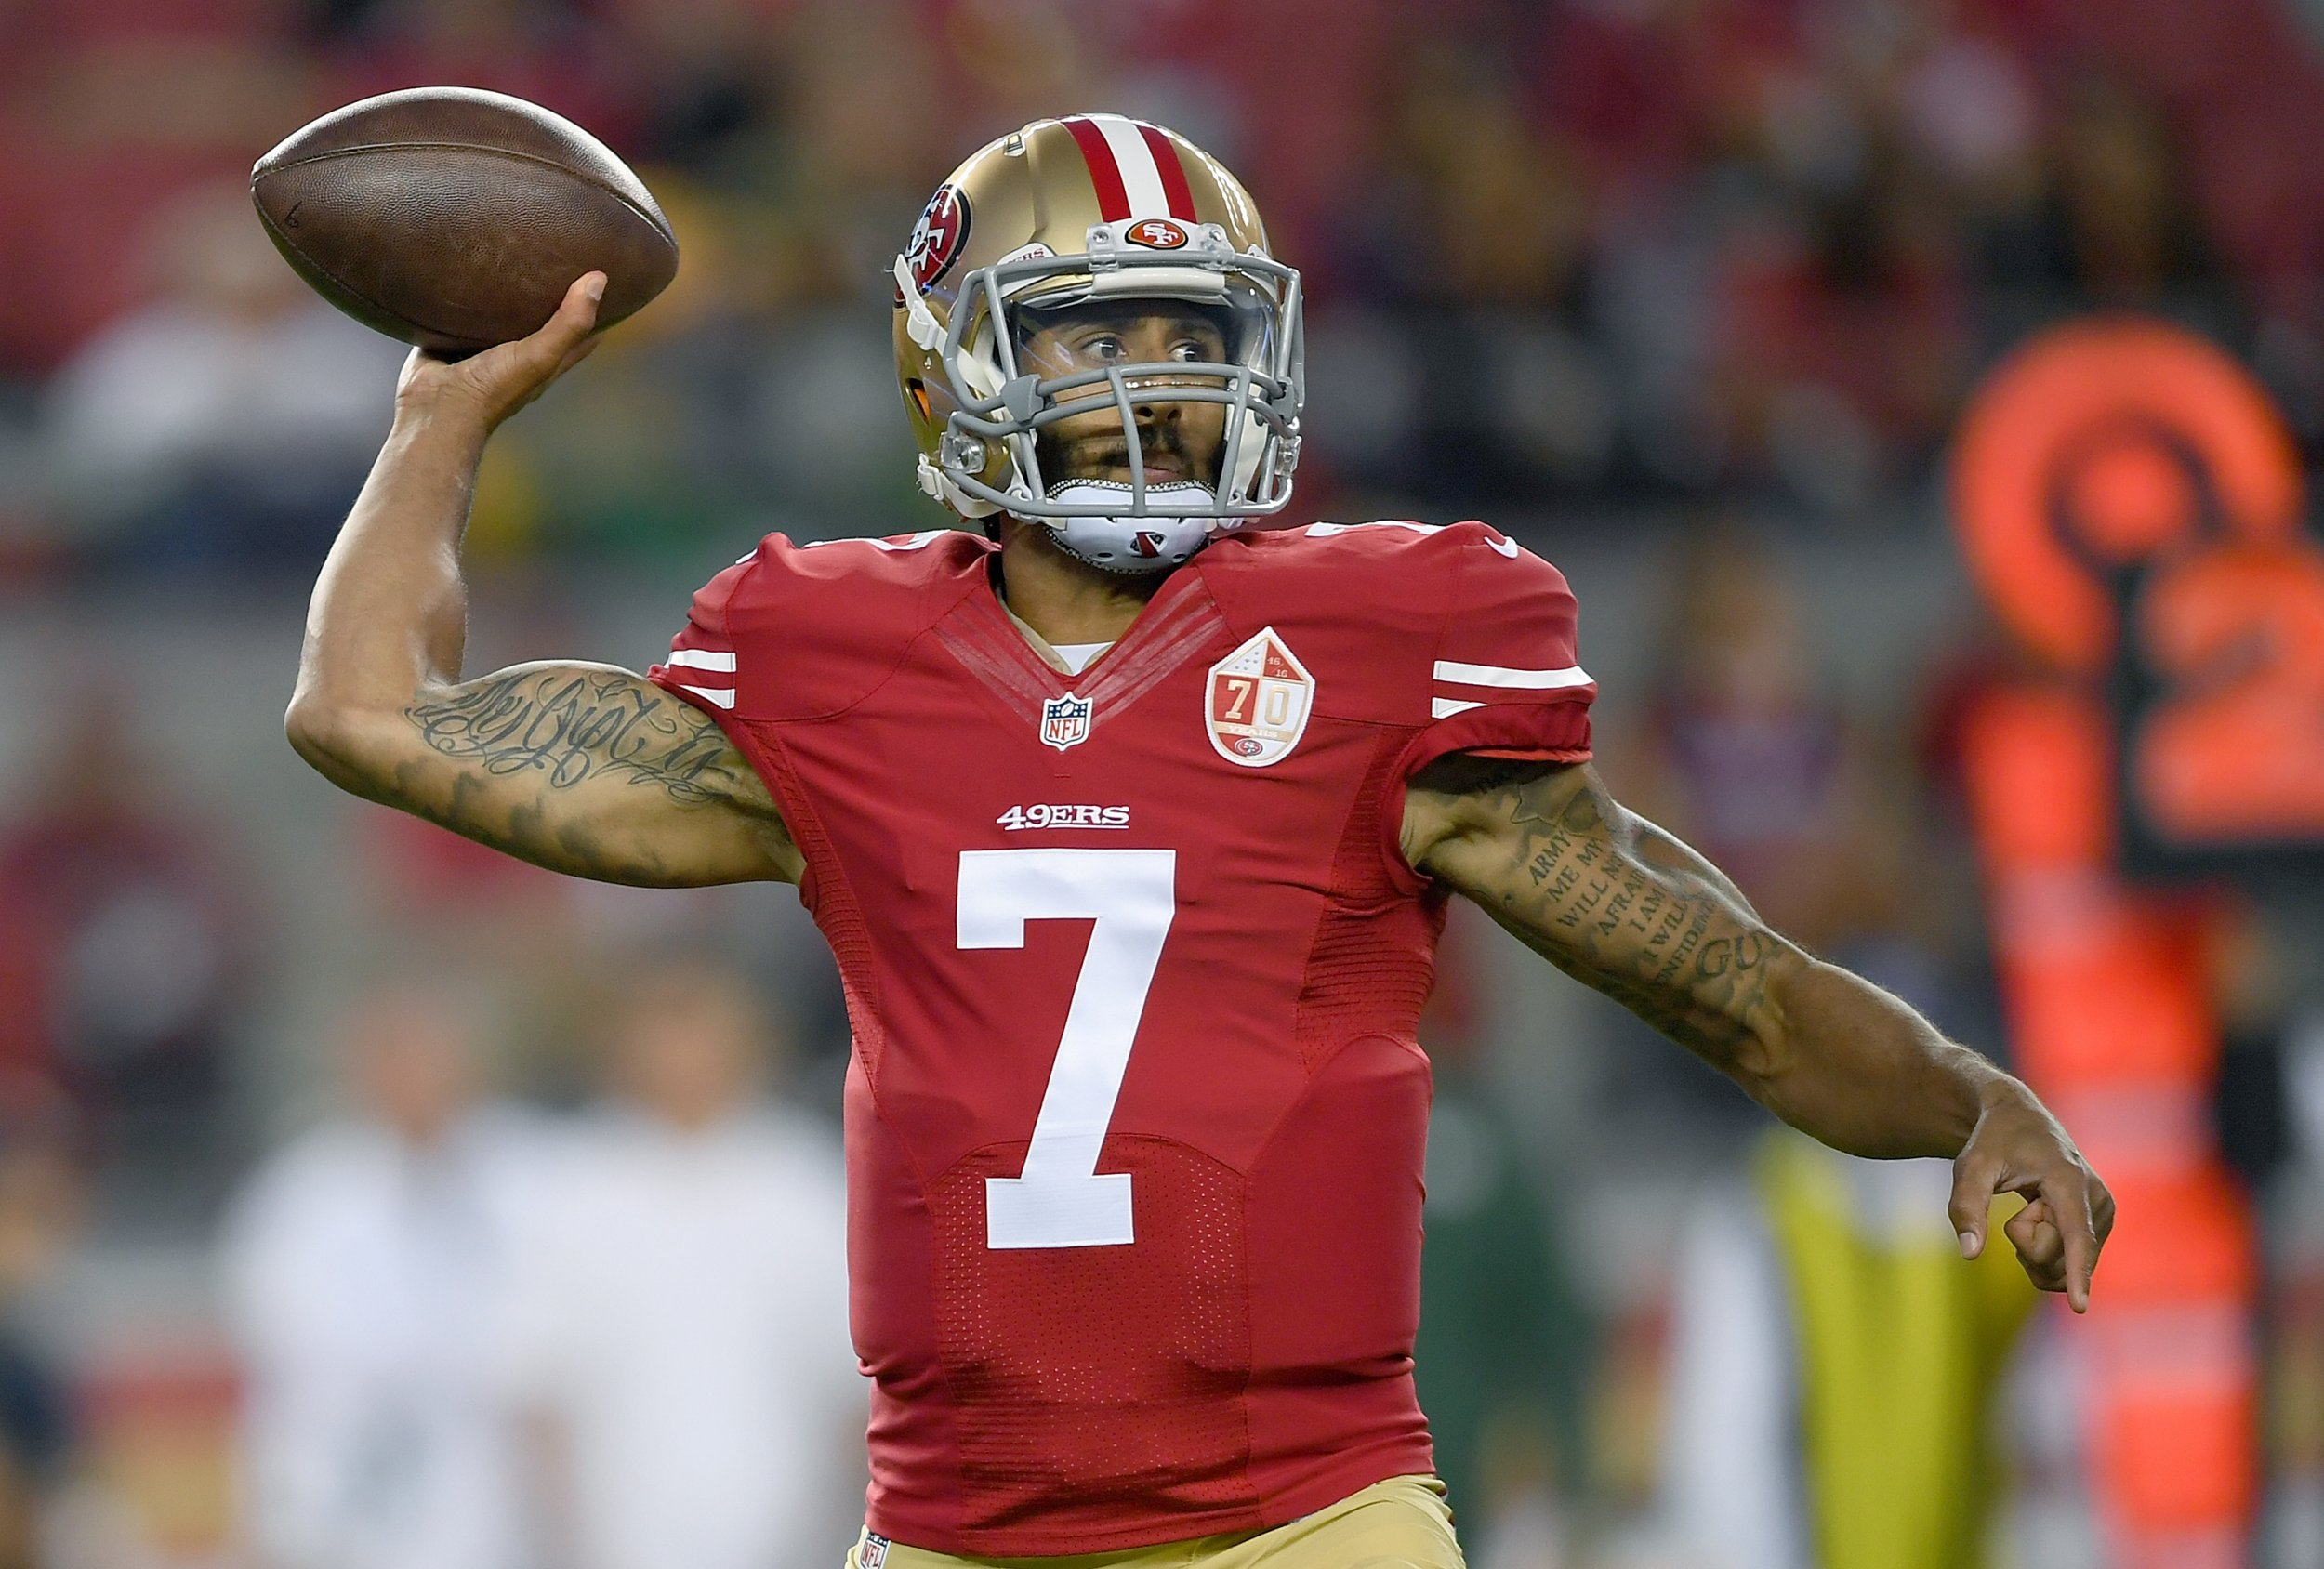 SANTA CLARA, CA - AUGUST 26: Quarterback Colin Kaepernick #7 of the San Francisco 49ers throws a pass against the Green Bay Packers in the first half of their preseason football game at Levi's Stadium on August 26, 2016 in Santa Clara, California. (Photo by Thearon W. Henderson/Getty Images)